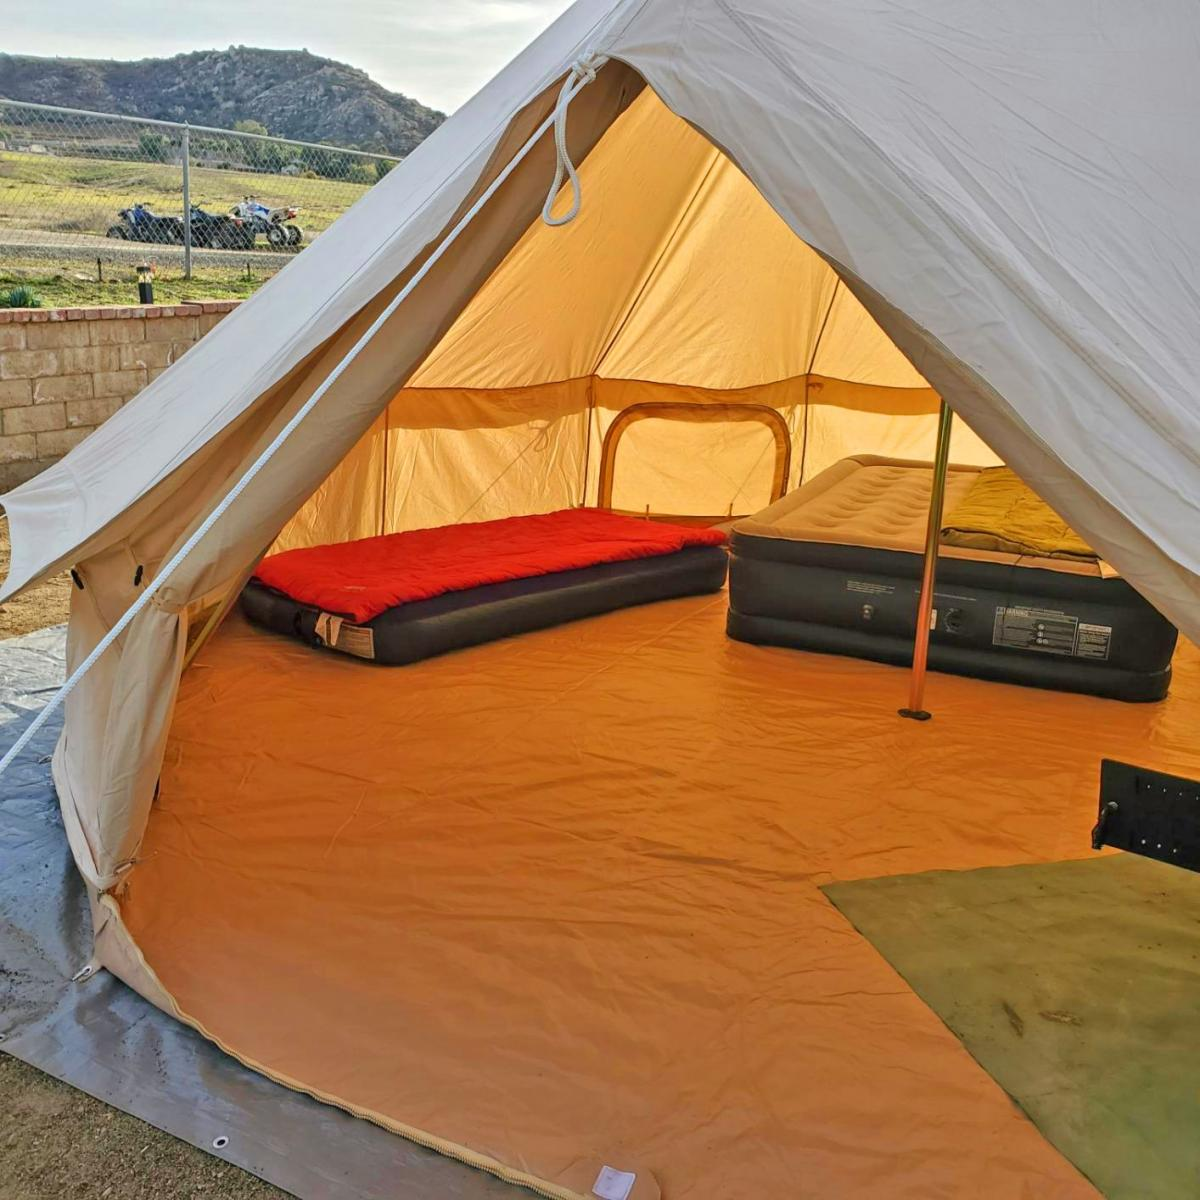 Official Glamping Tent - Boutique camping bell tent - Best music festival tent